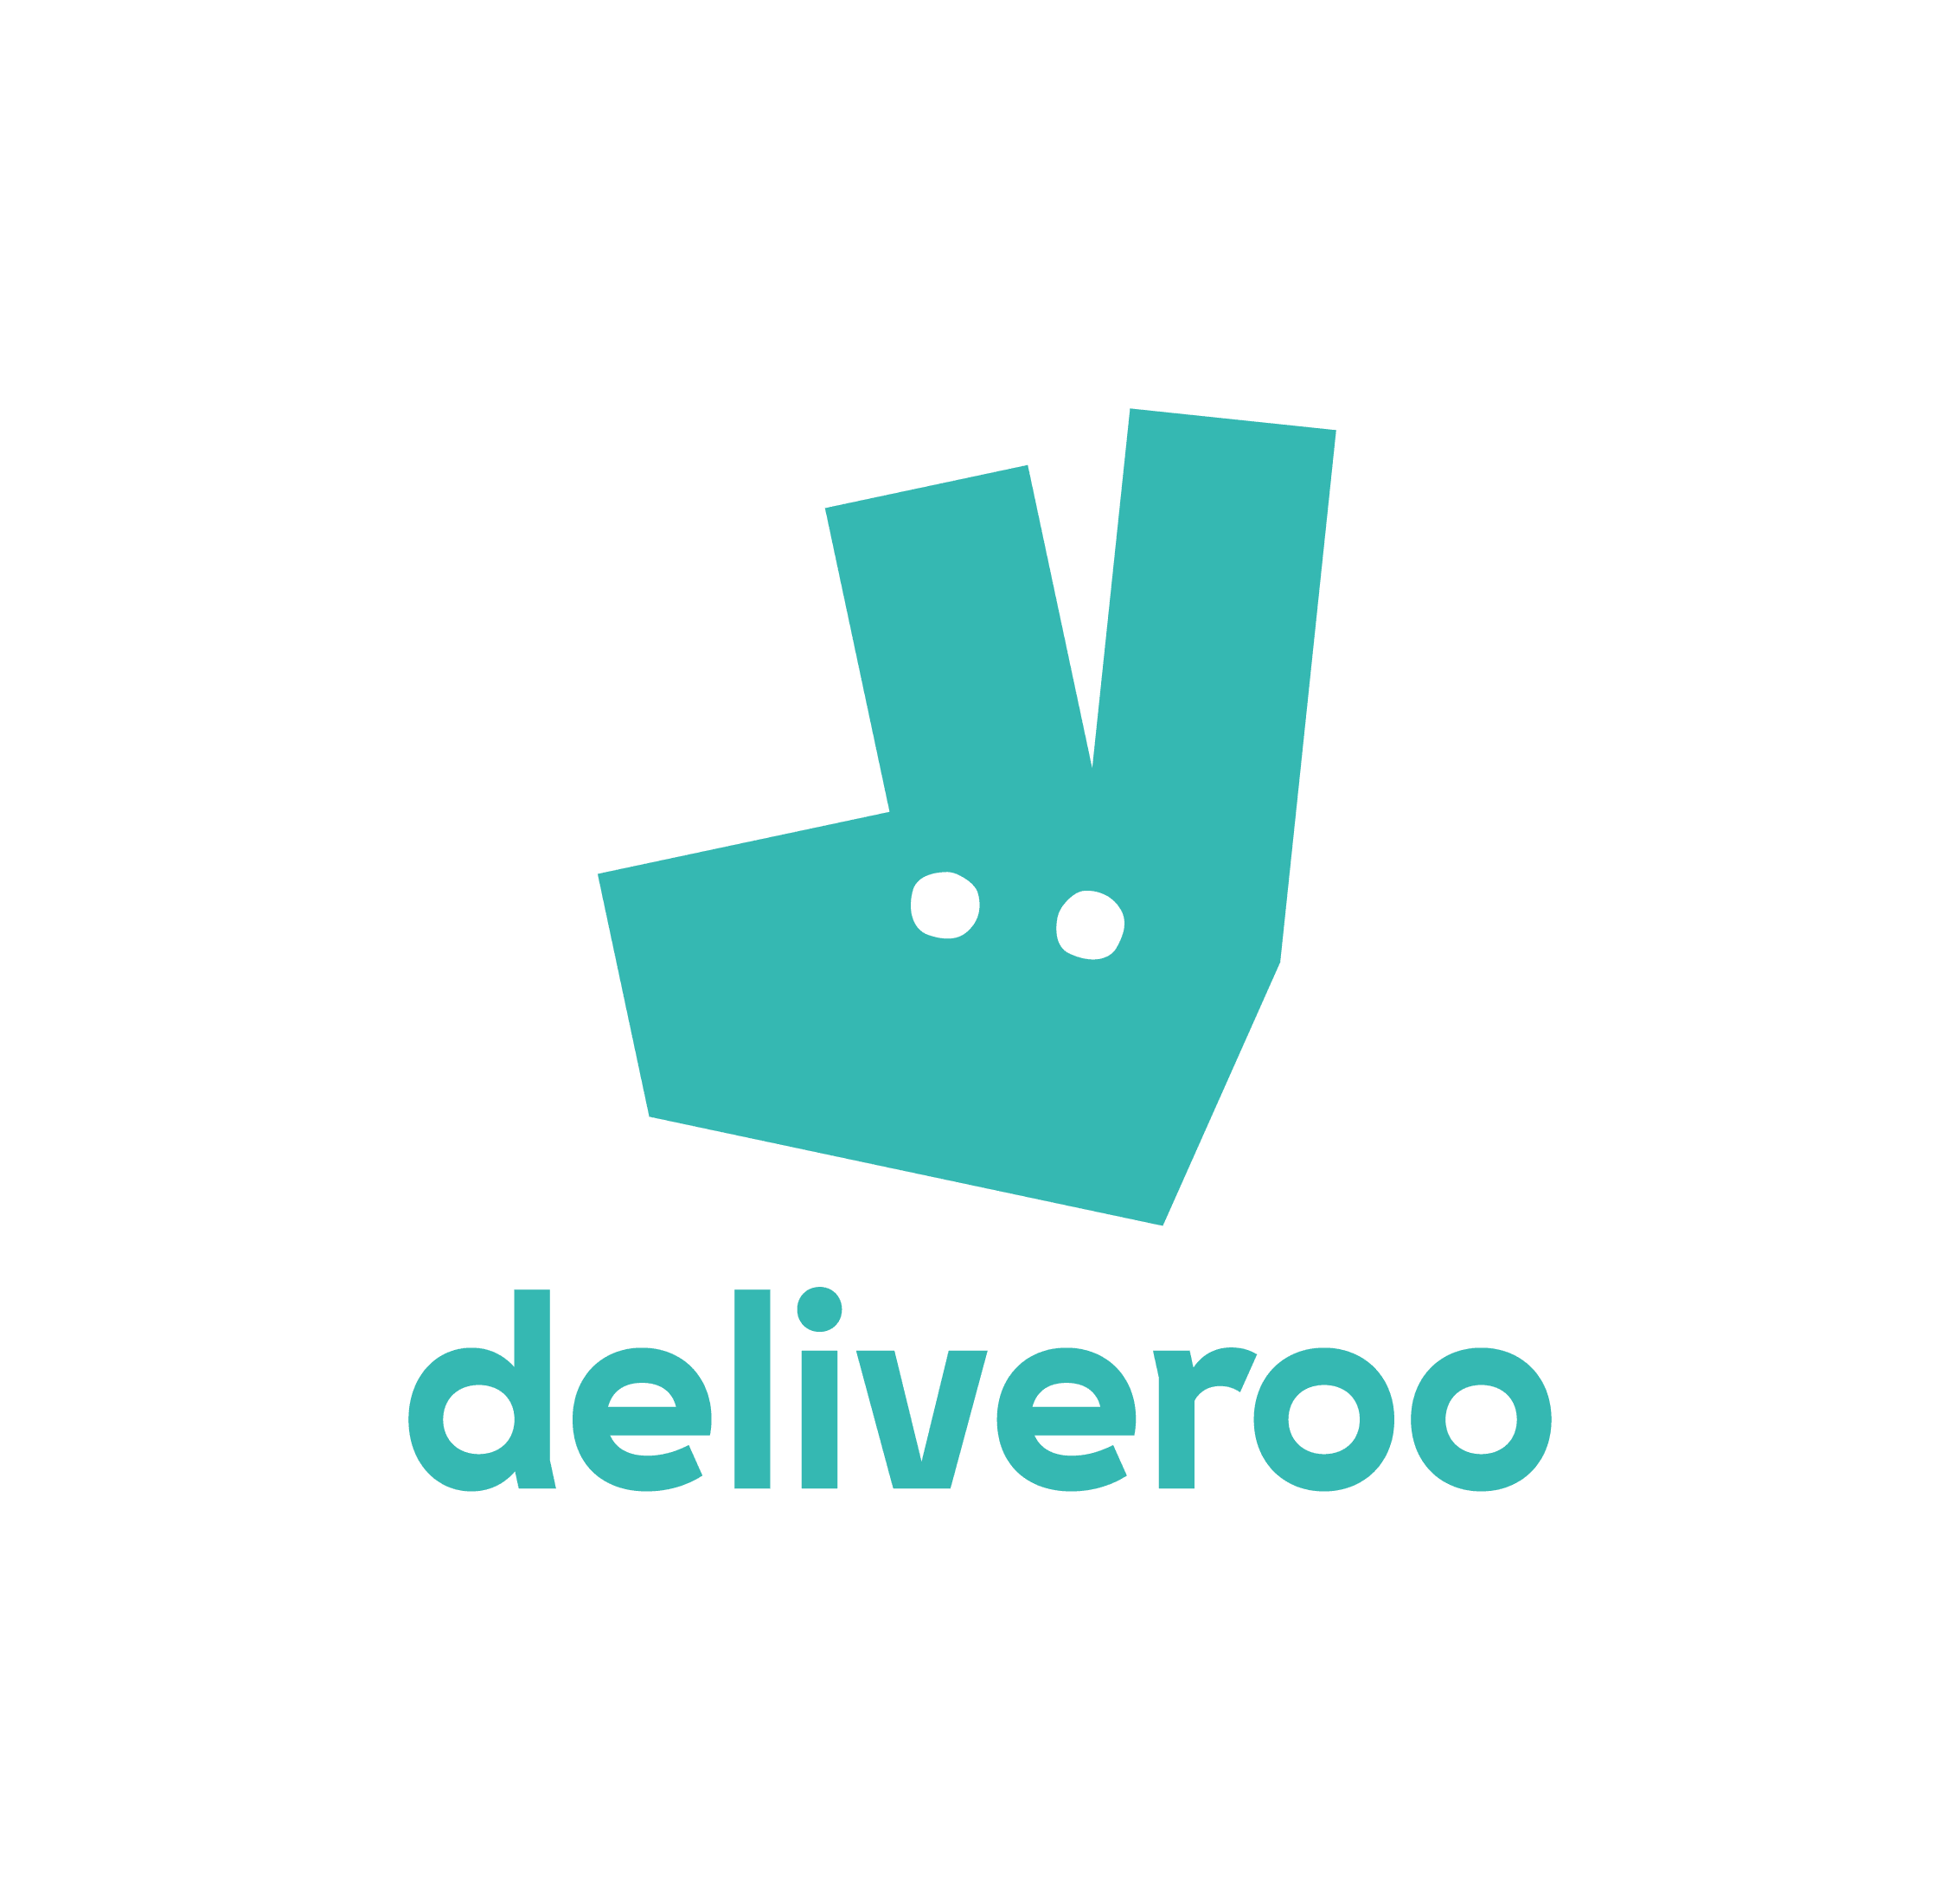 Deliveroo Promo Codes in Singapore February 2020